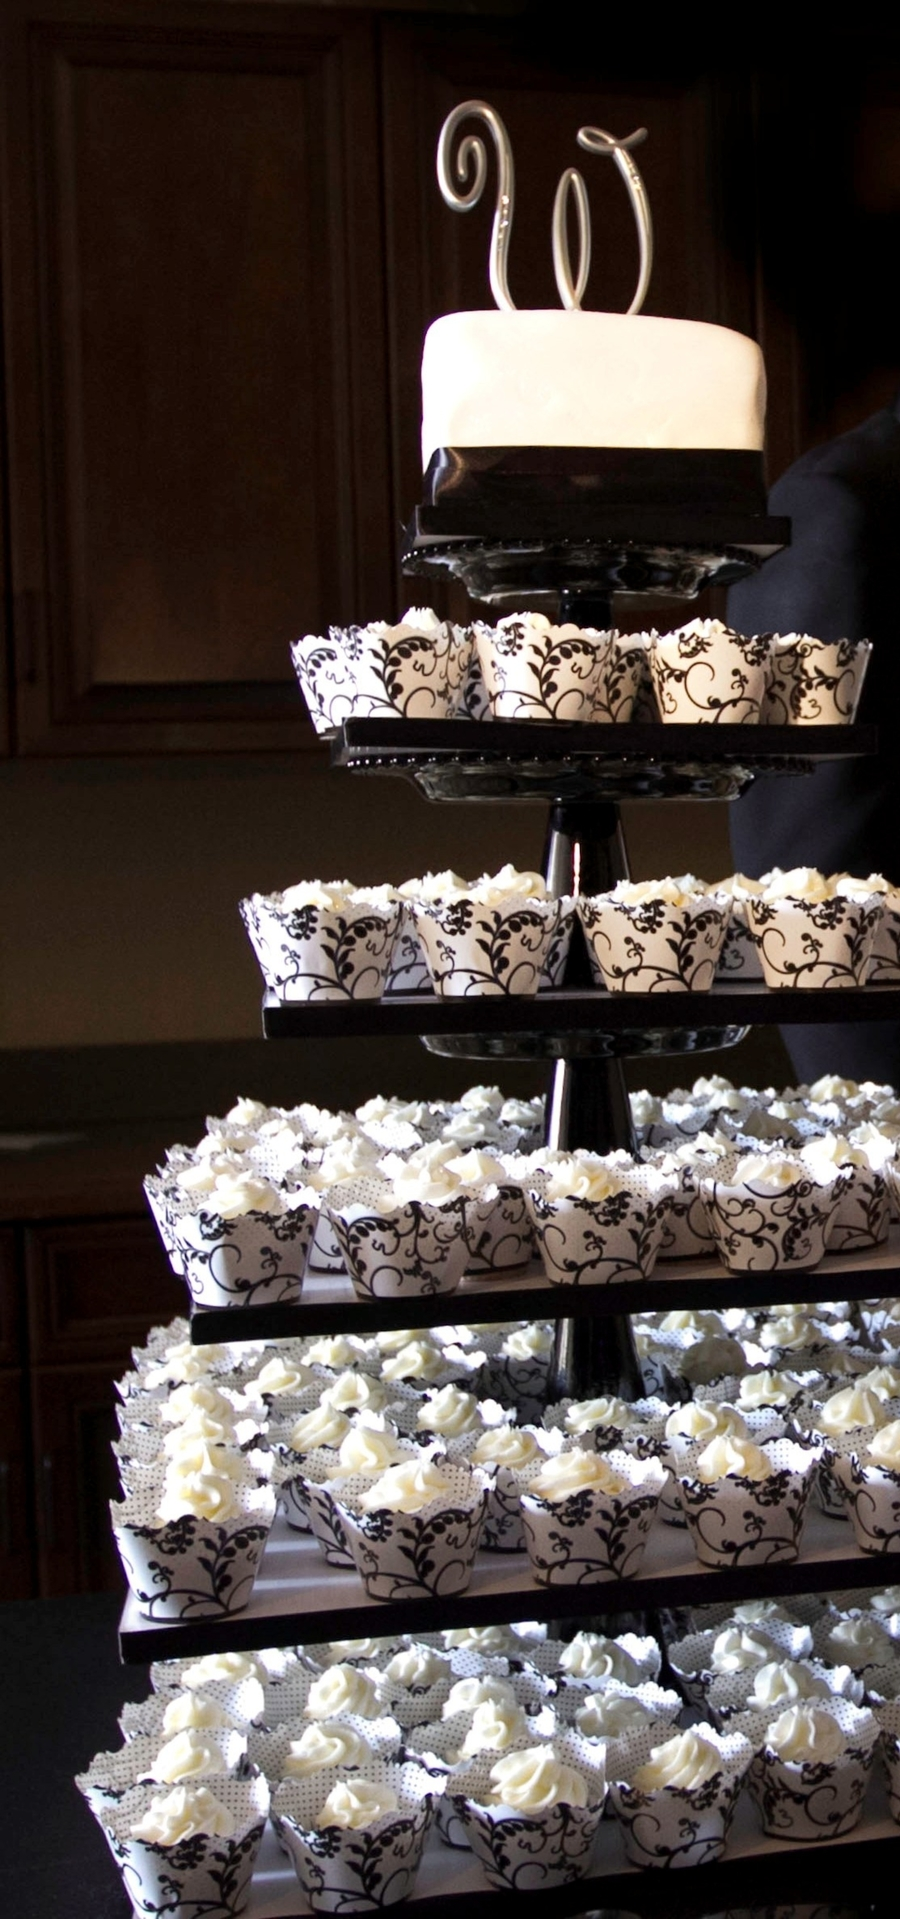 black and white wedding cake and cupcakes. Black Bedroom Furniture Sets. Home Design Ideas